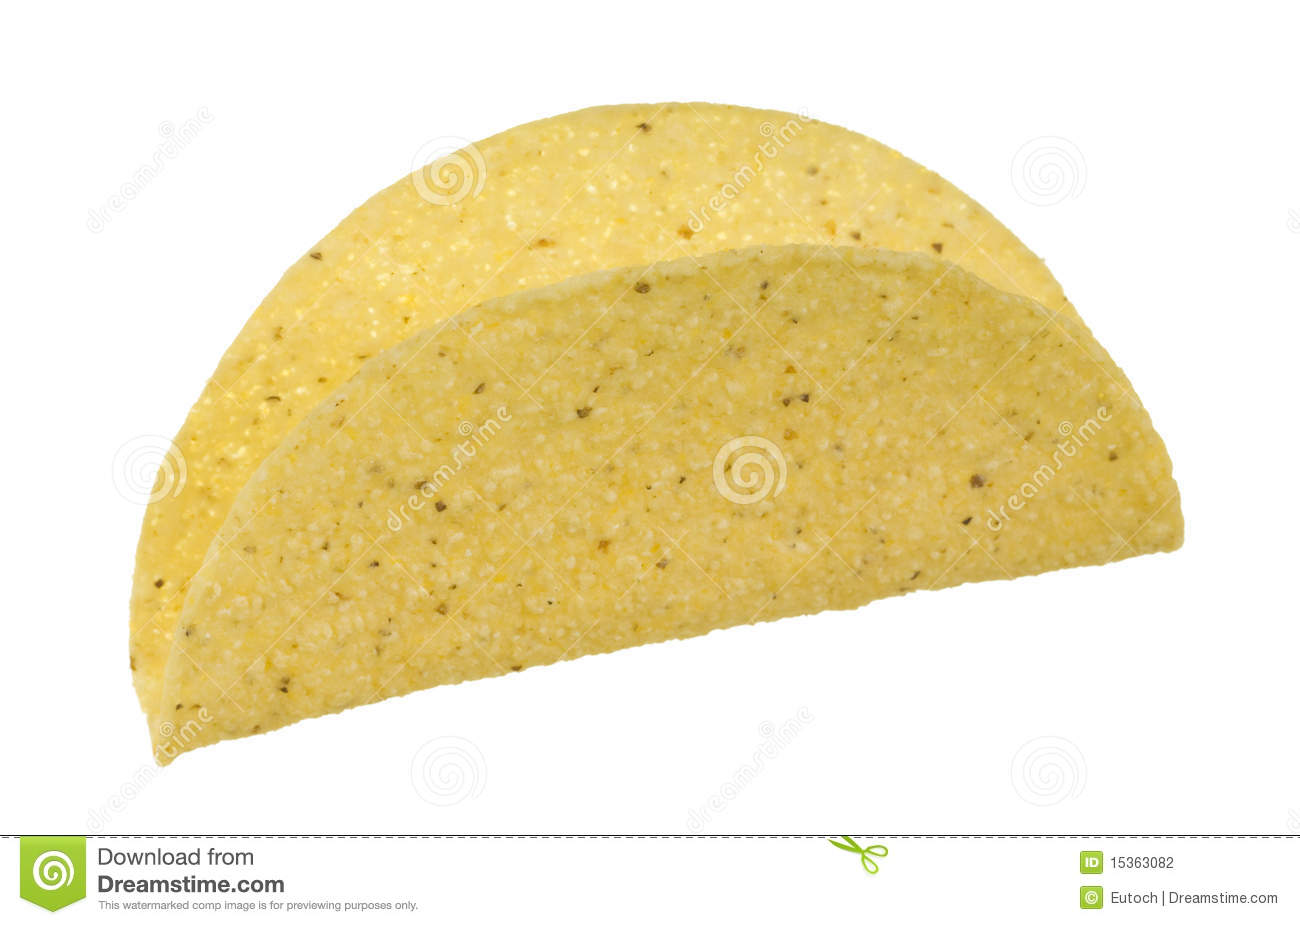 Yellow corn taco shell; isolated on white background.